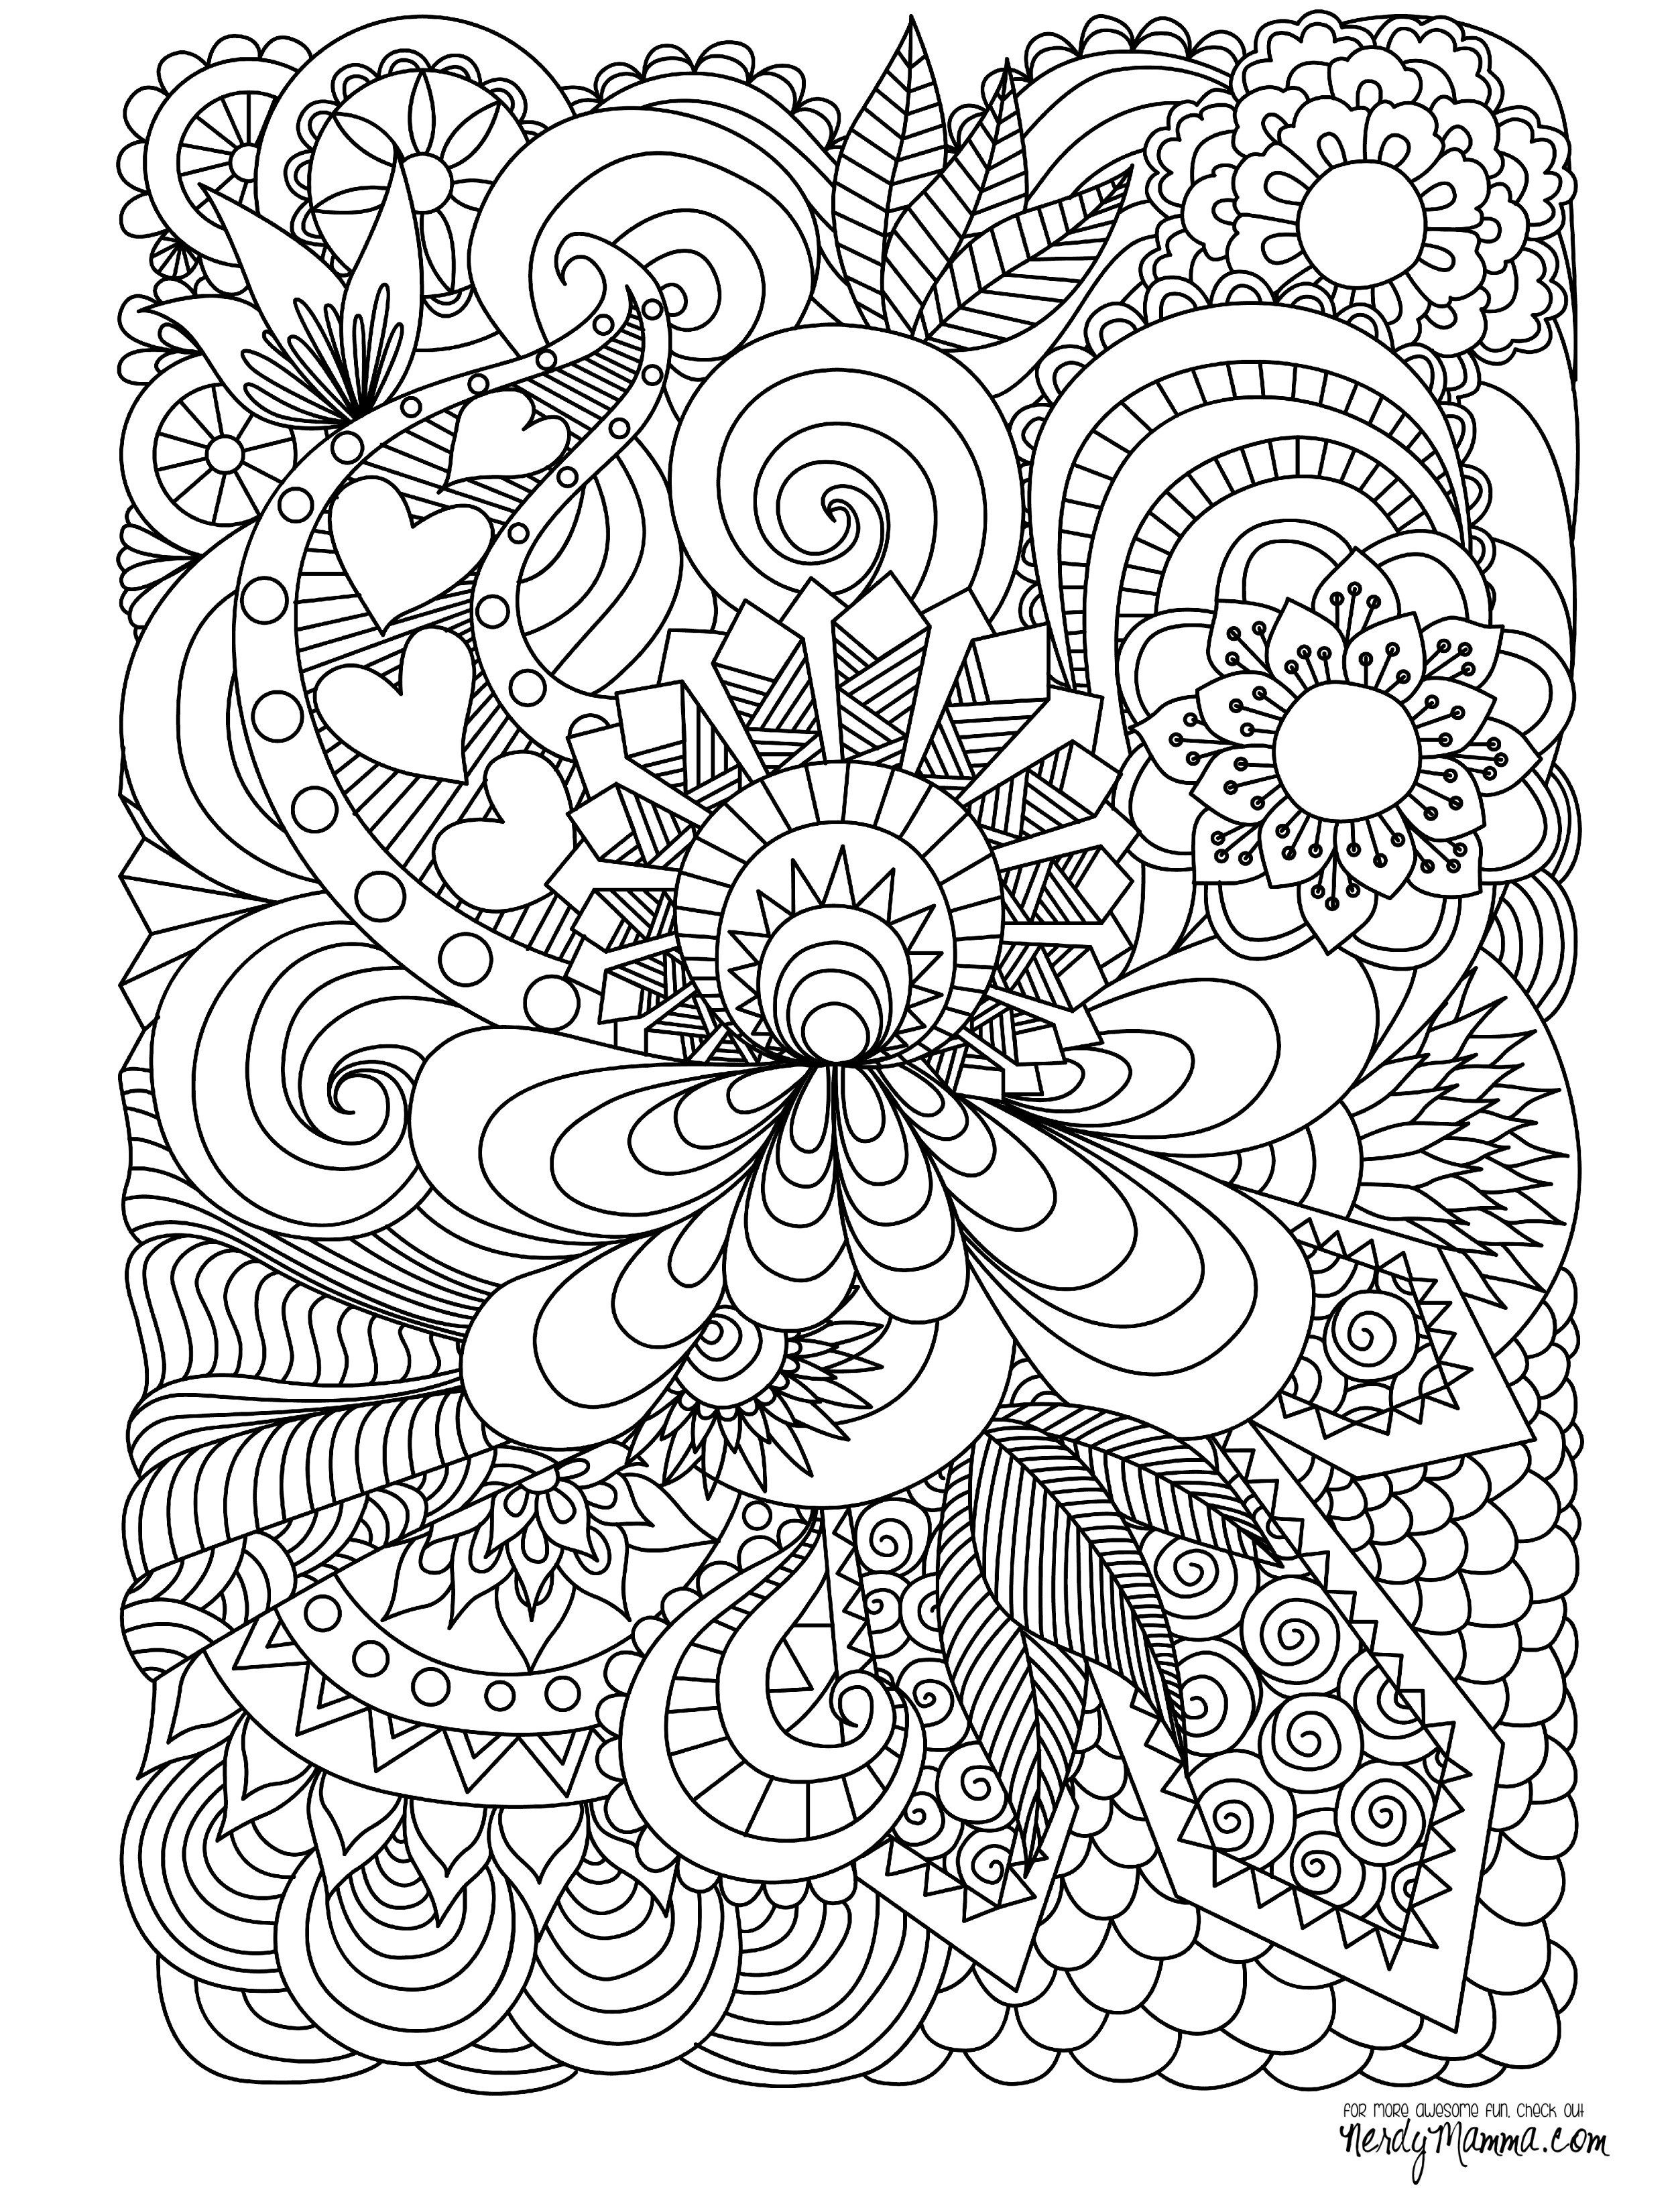 11 Free Printable Adult Coloring